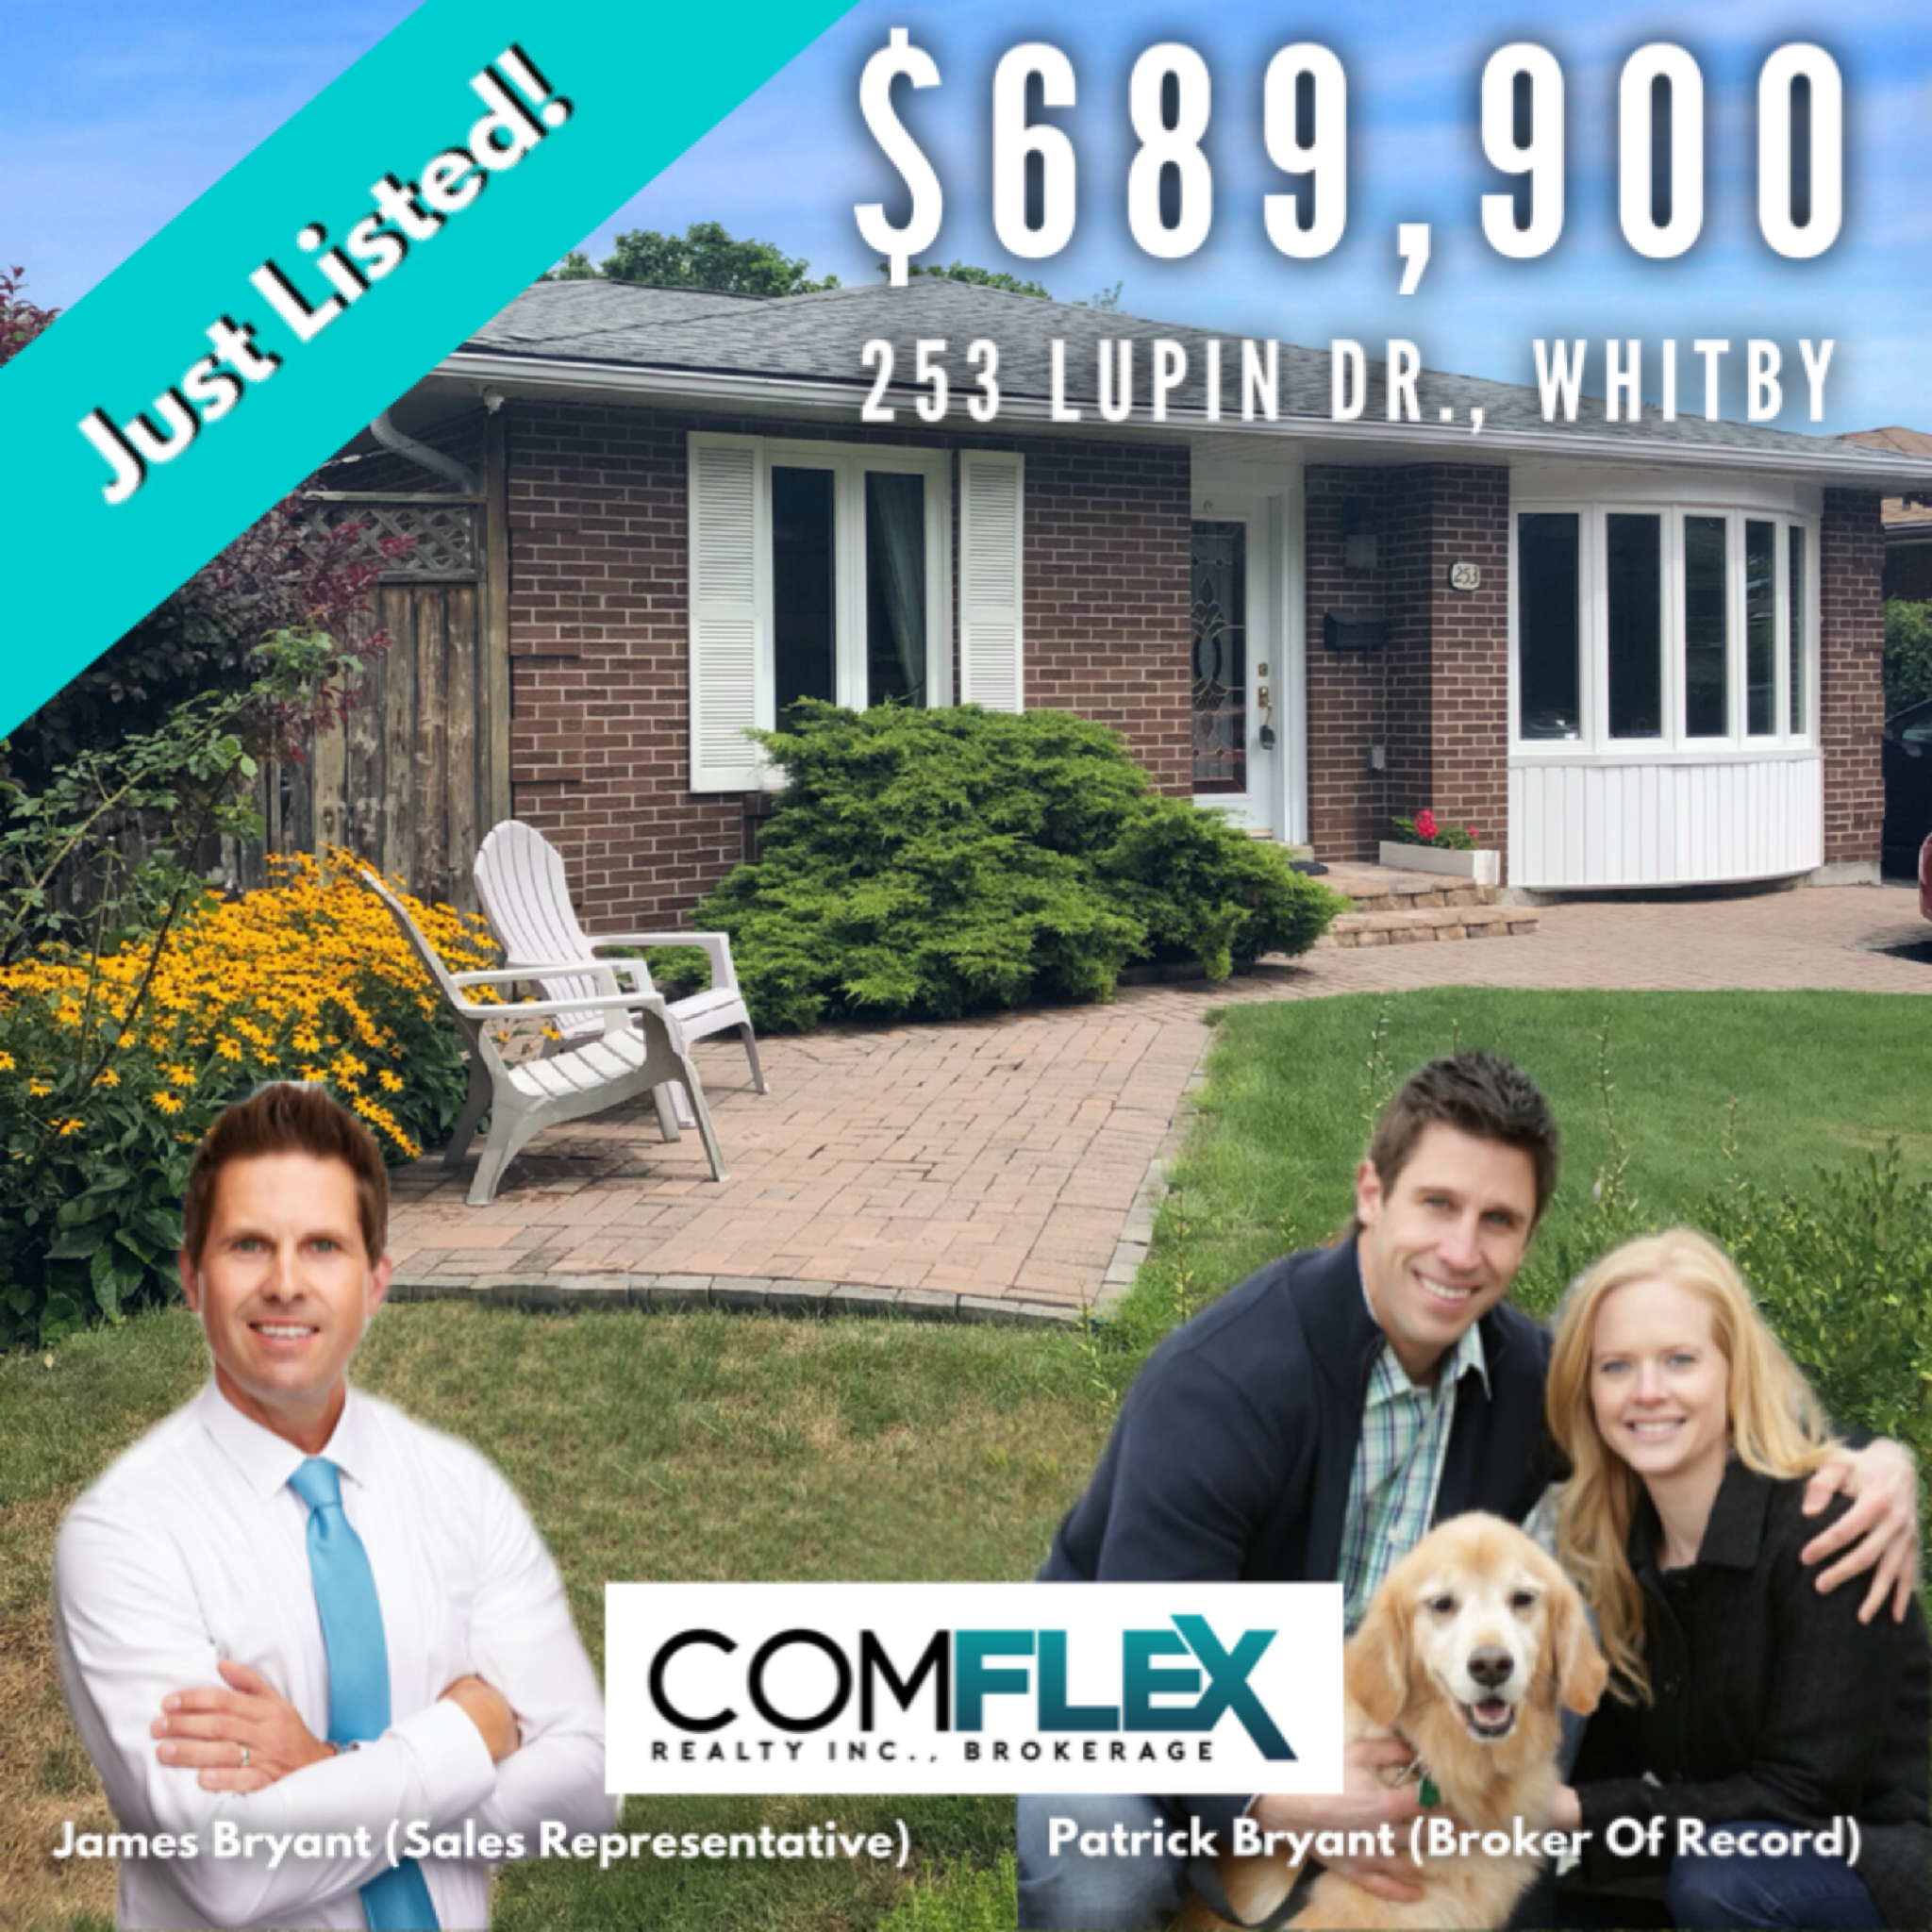 JUST LISTED!  253 LUPIN DRIVE, WHITBY!  $689,900